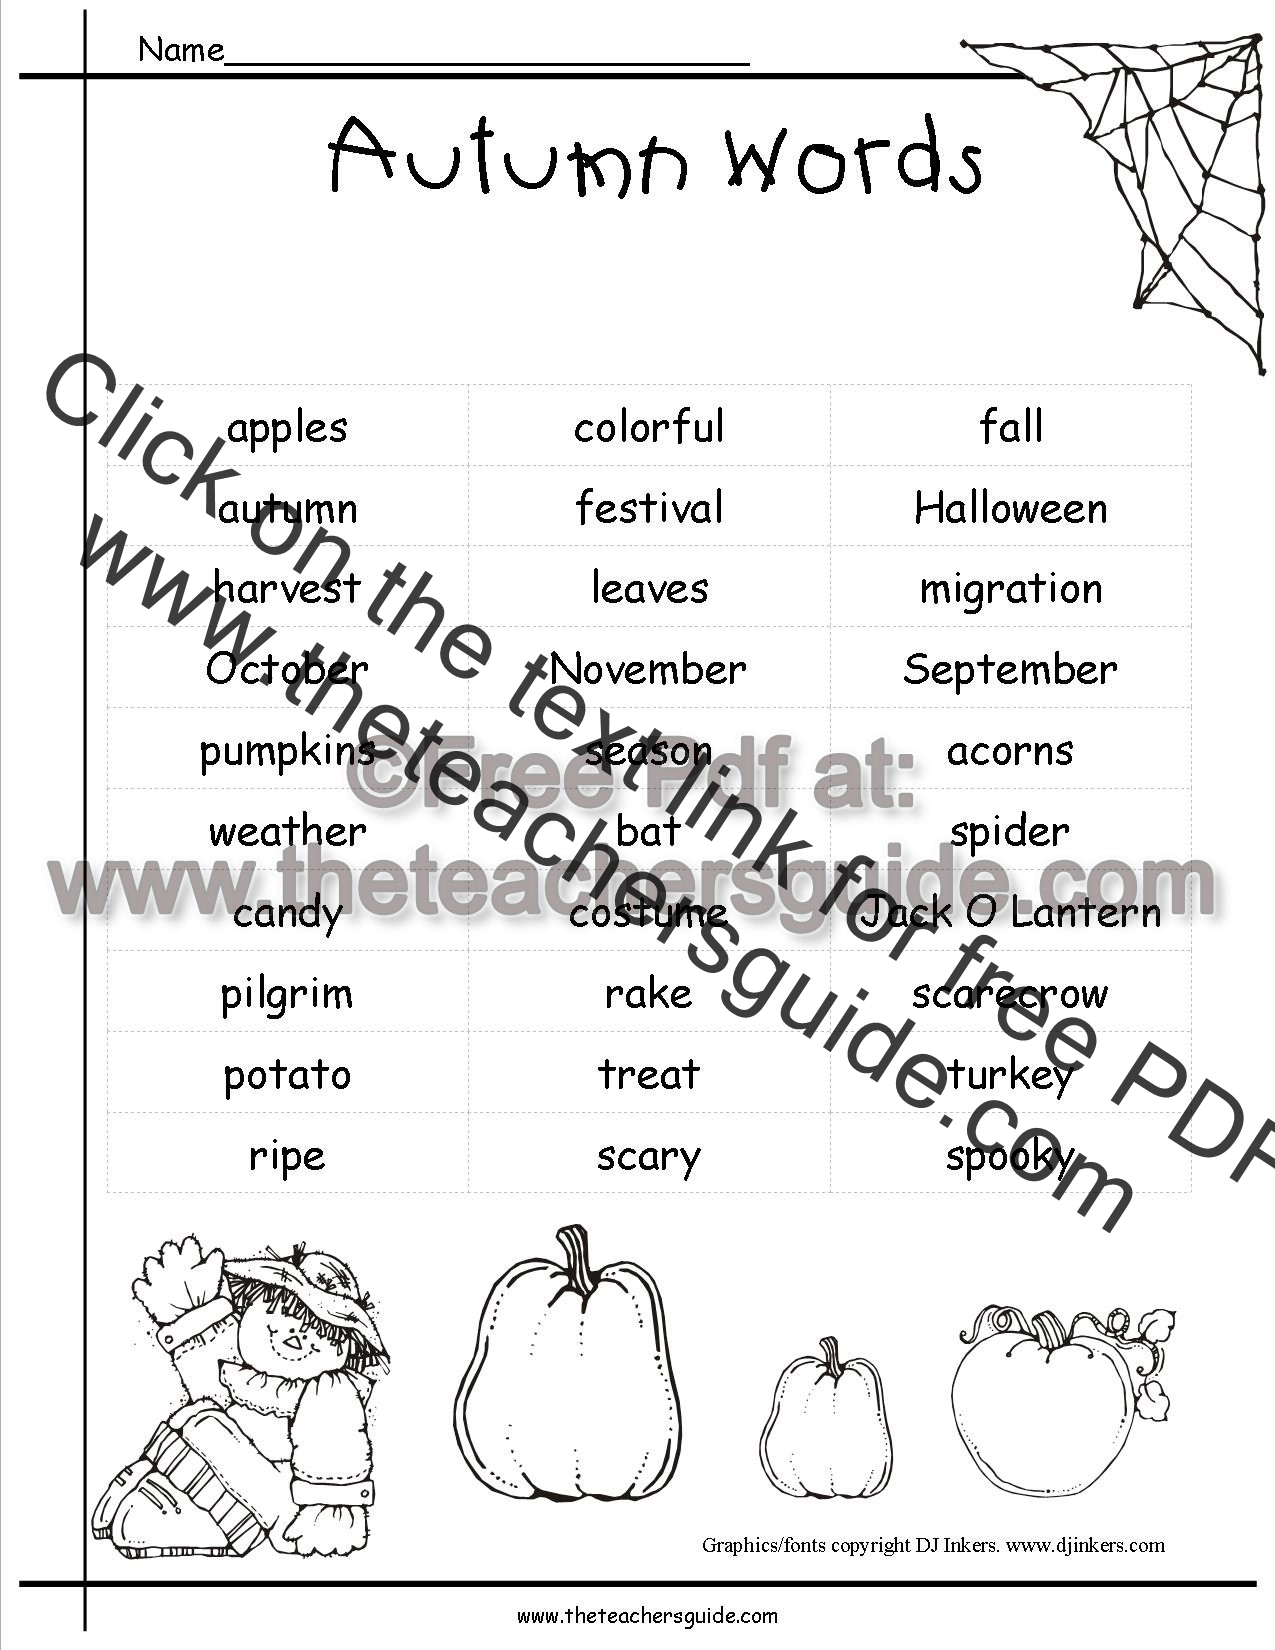 Autumn Worksheets and Printouts from The Teacher's Guide